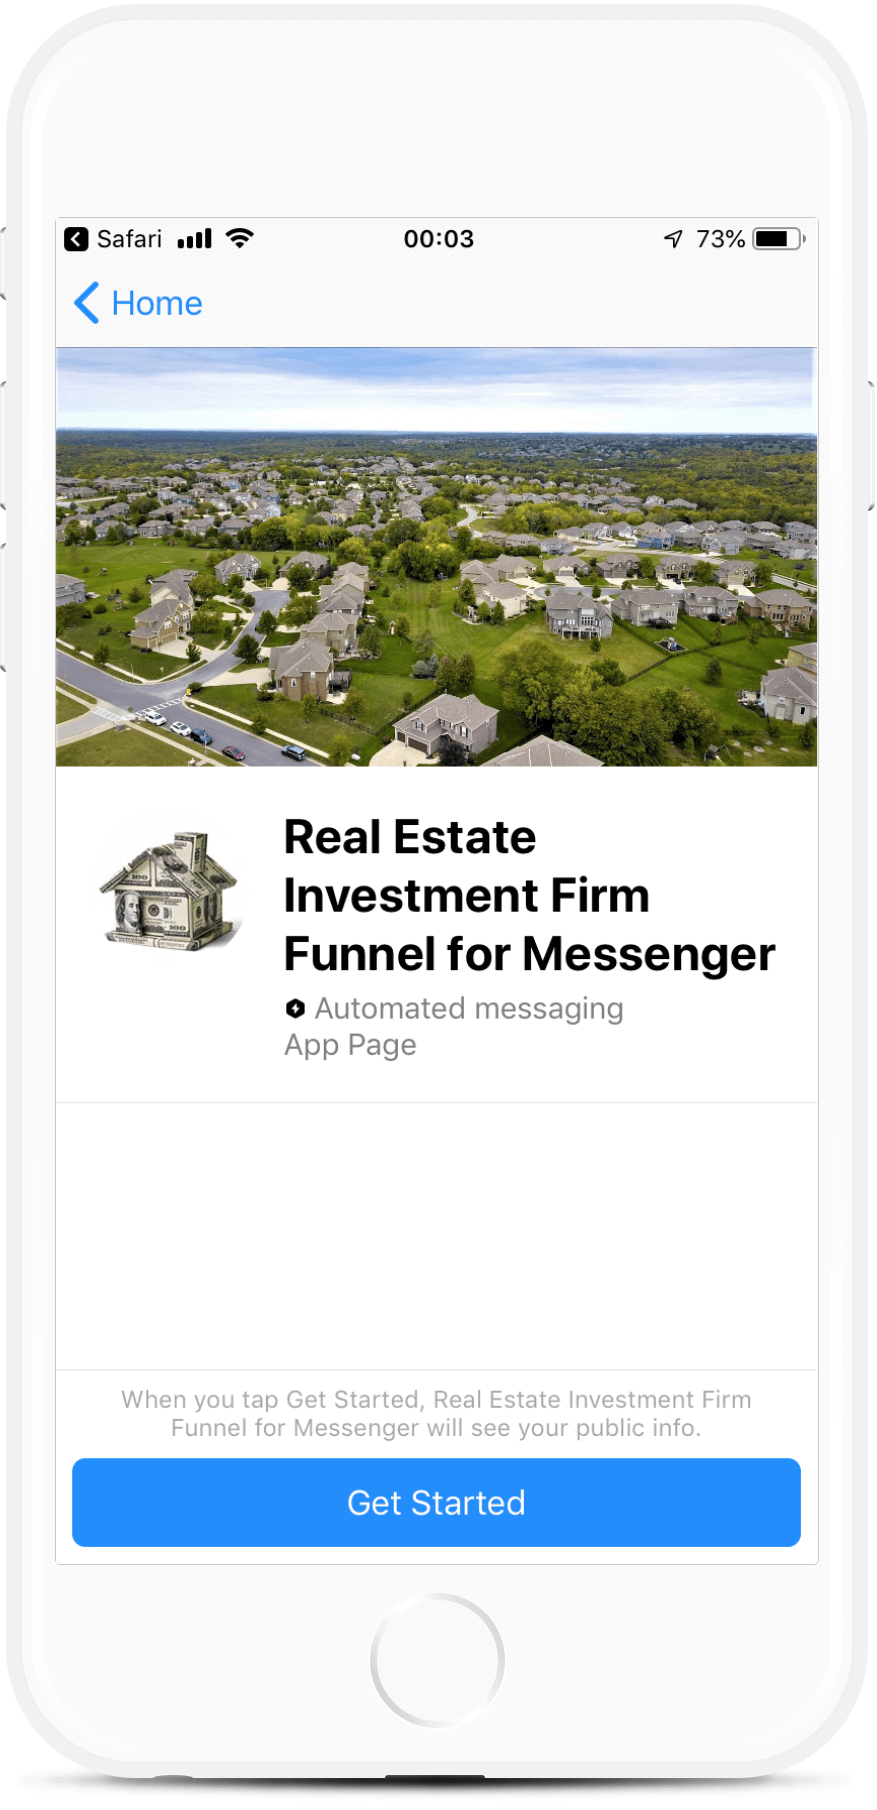 Real Estate Investment Firm Funnel for Messenger